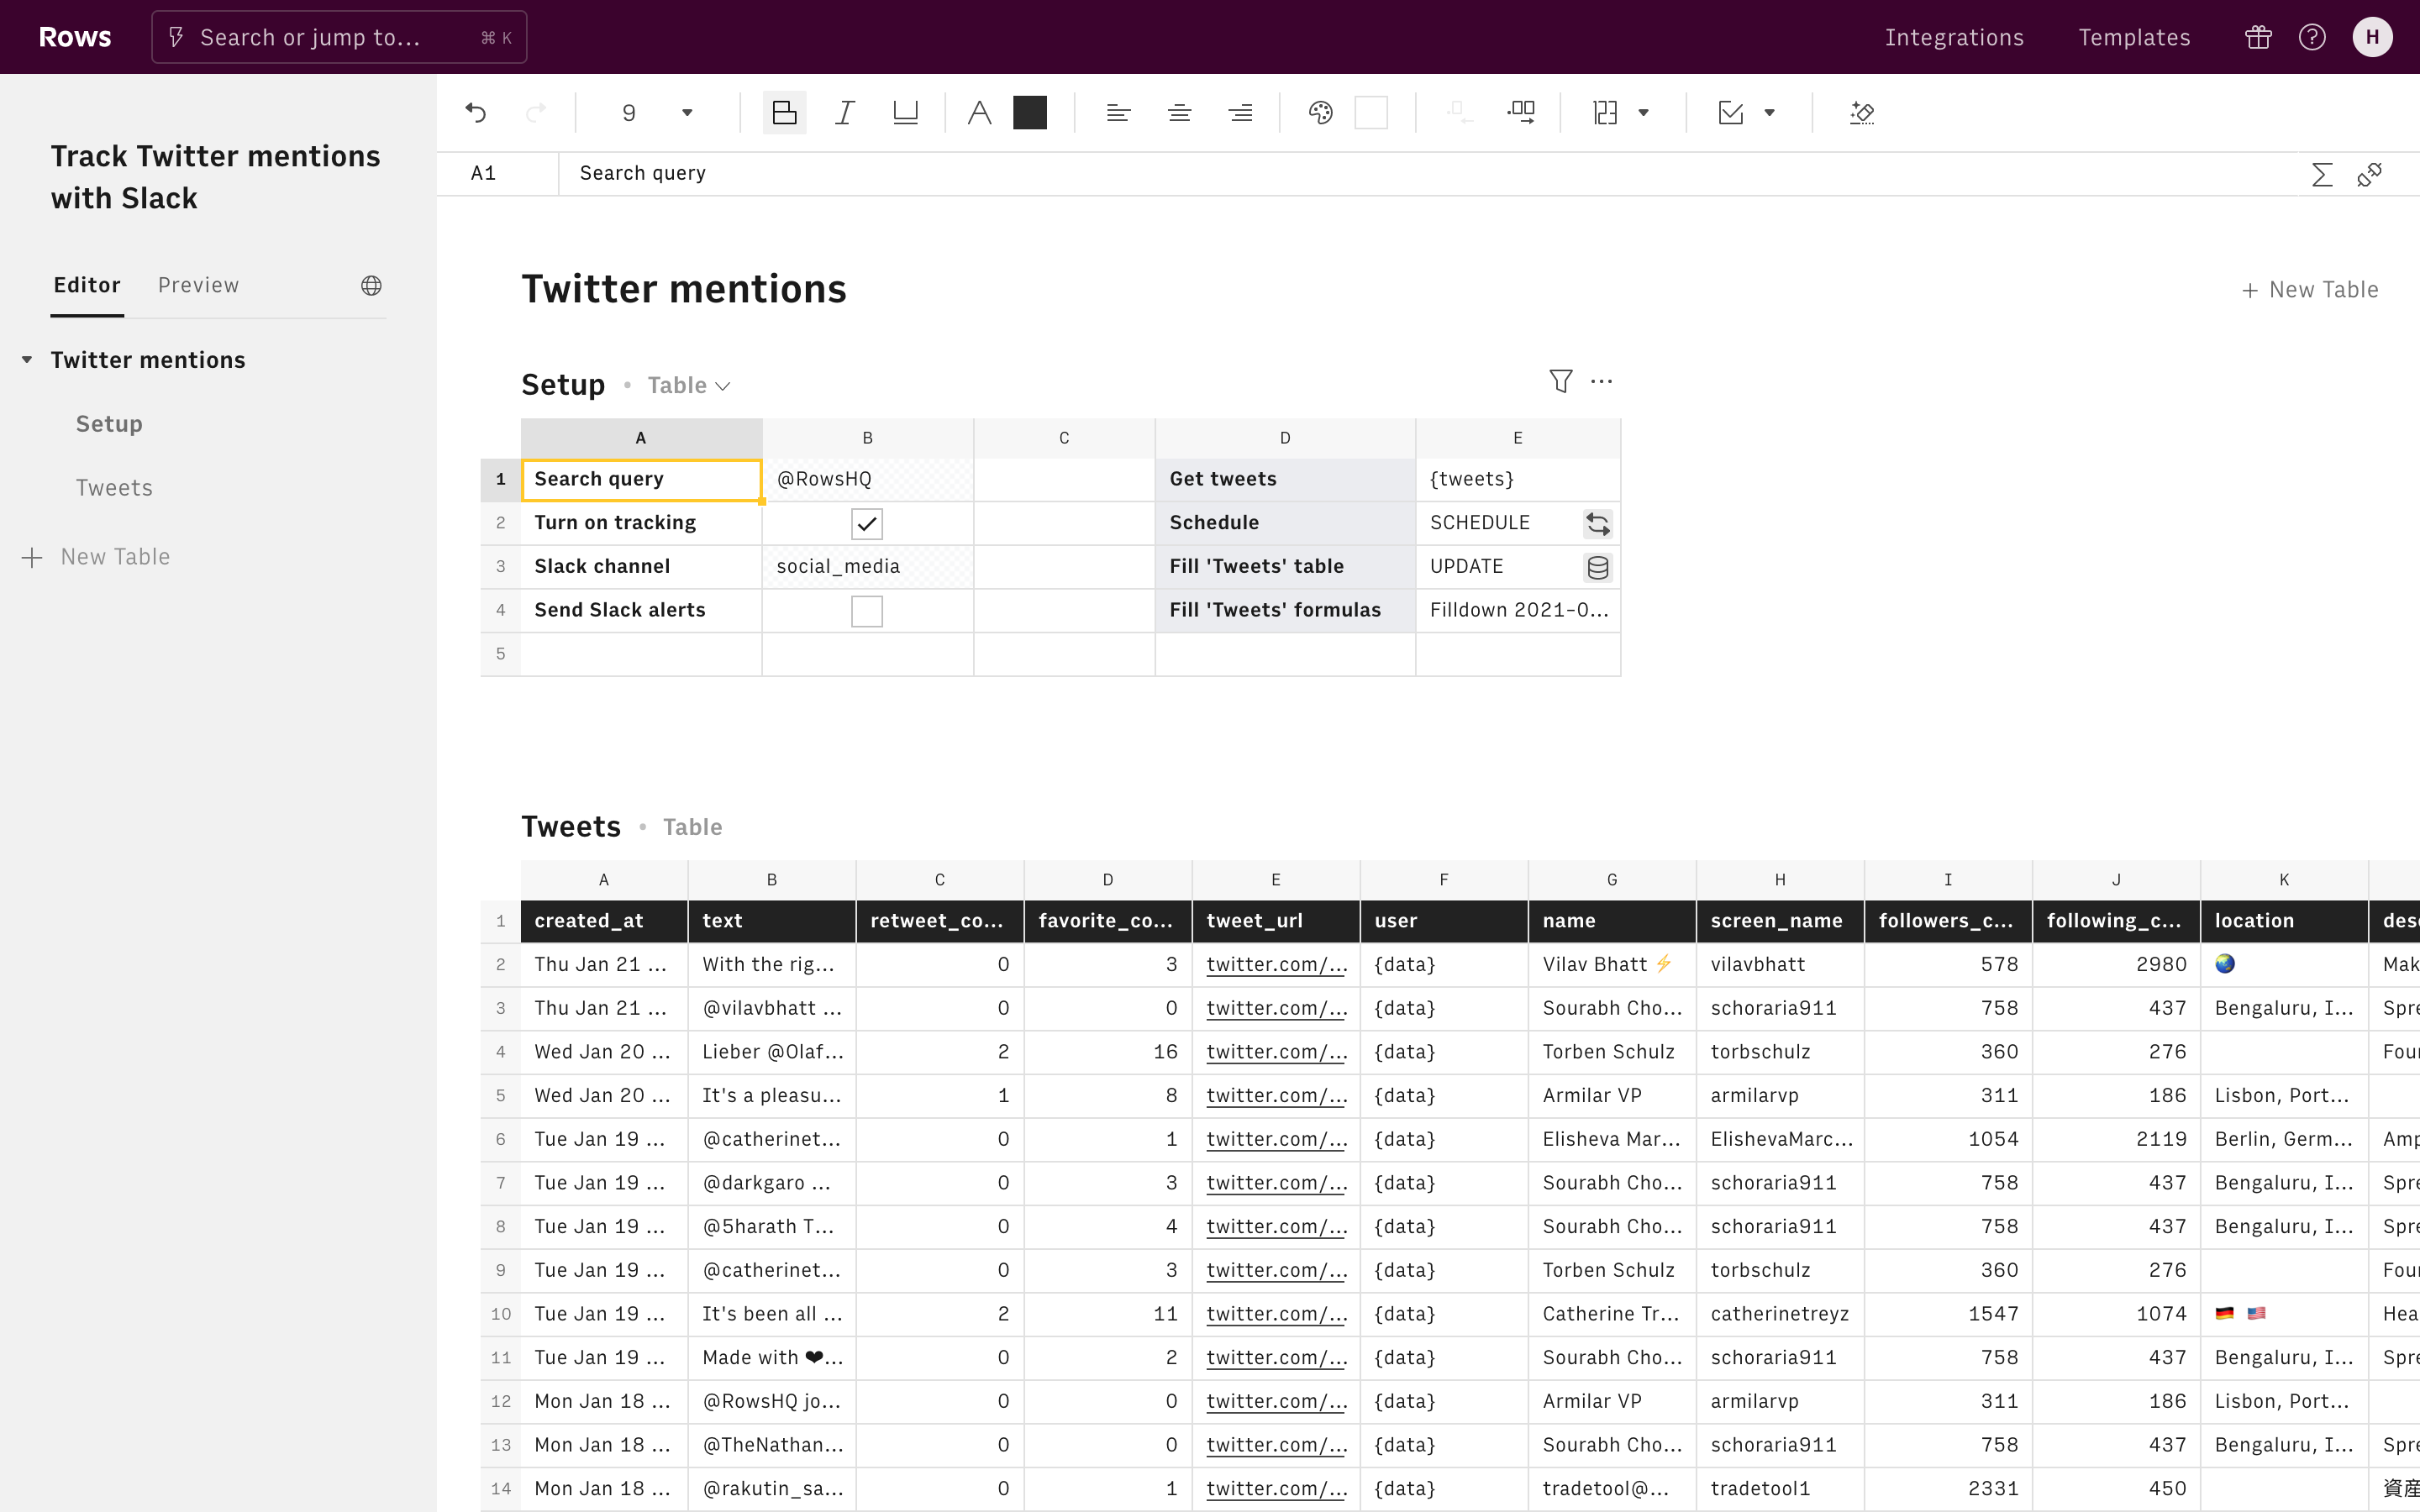 Track Twitter mentions with Slack Editor